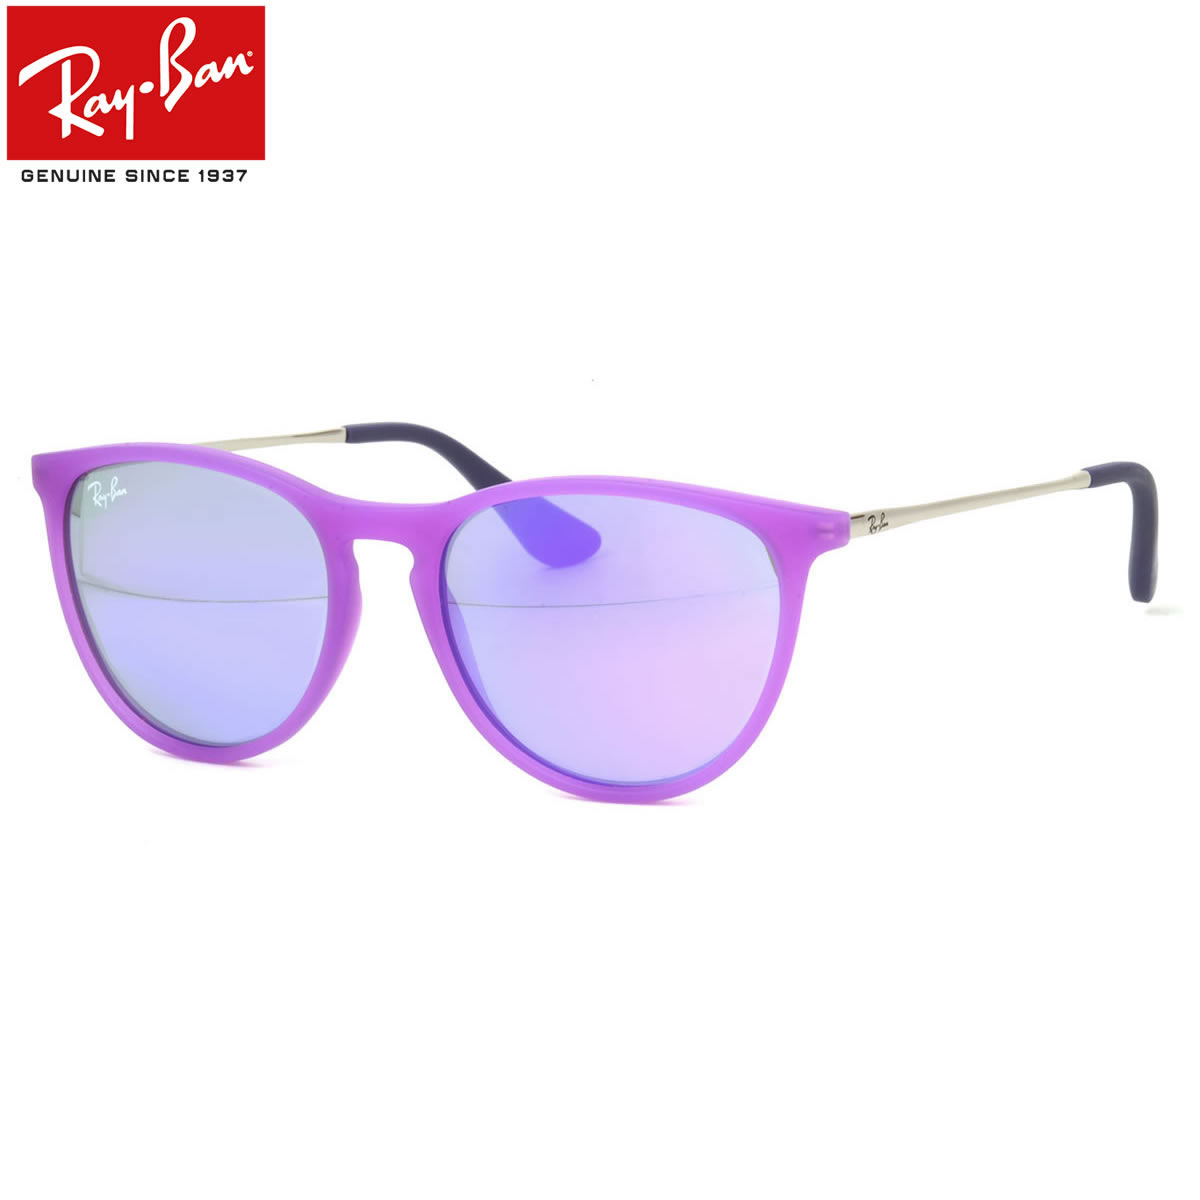 1ff50409568 Optical Shop Thats  Point up to eight times! (Ray-Ban) junior ...